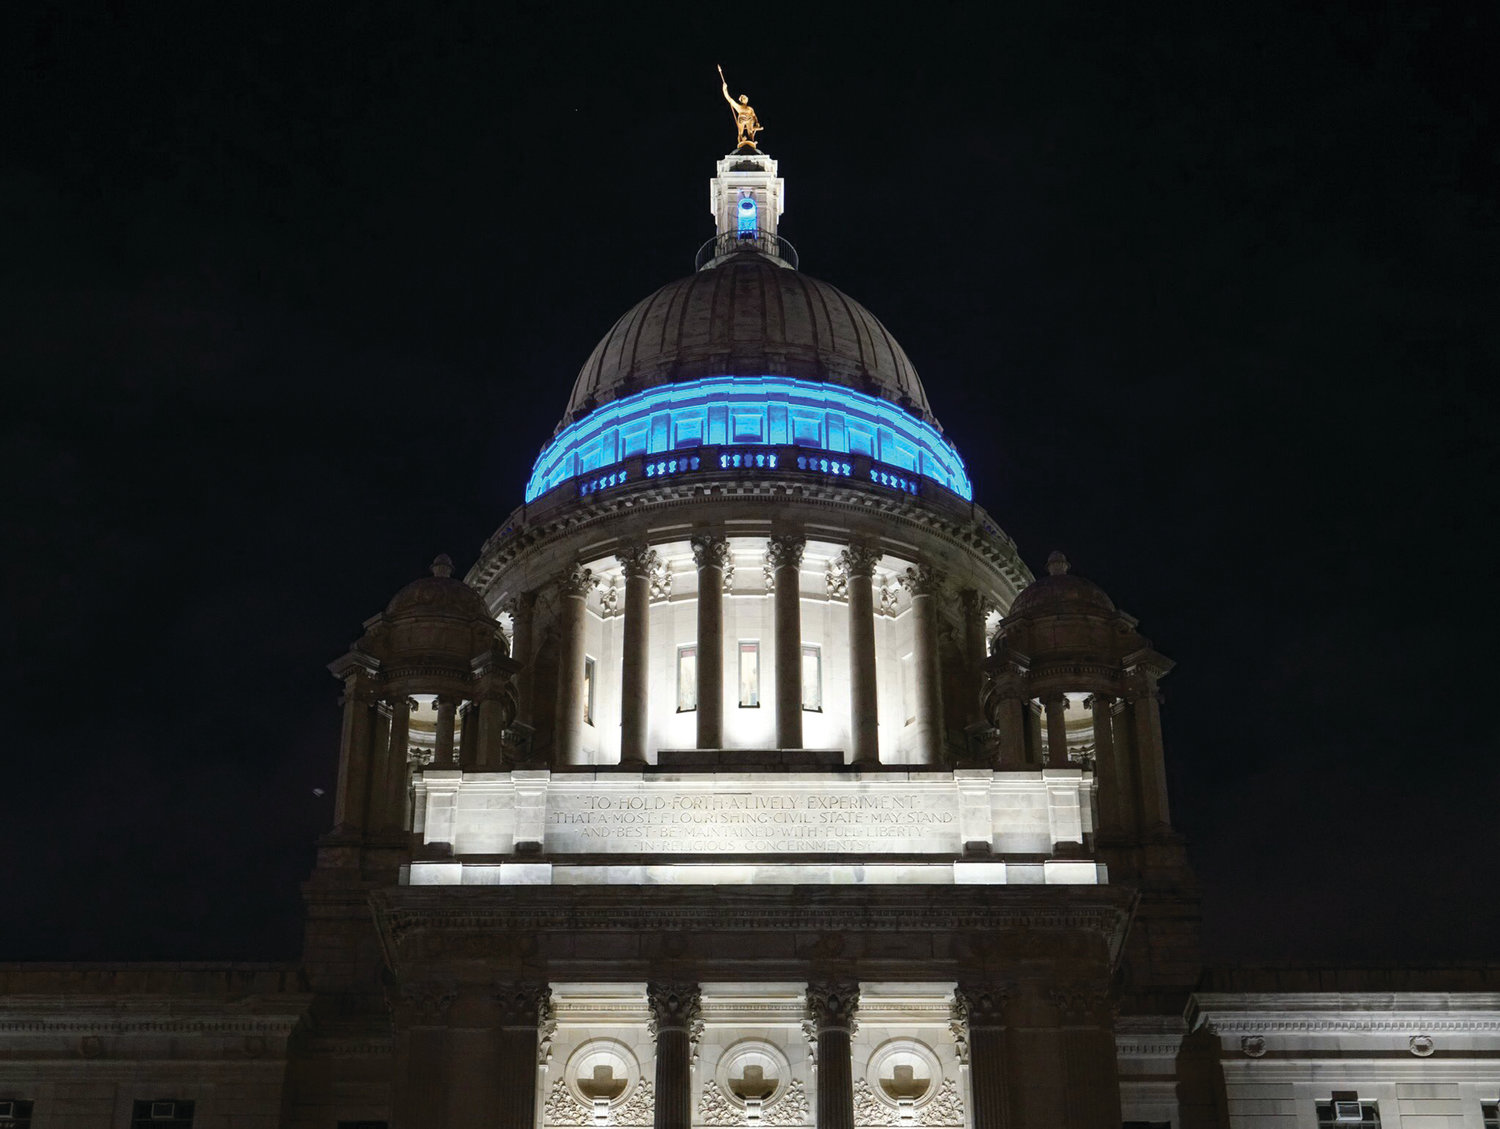 PROUD MOMENT: John and Alex Amaral spoke proudly of their involvement with JDRF, efforts that culminated in seeing the State House lit up blue for a week in recognition of type 1 diabetes.